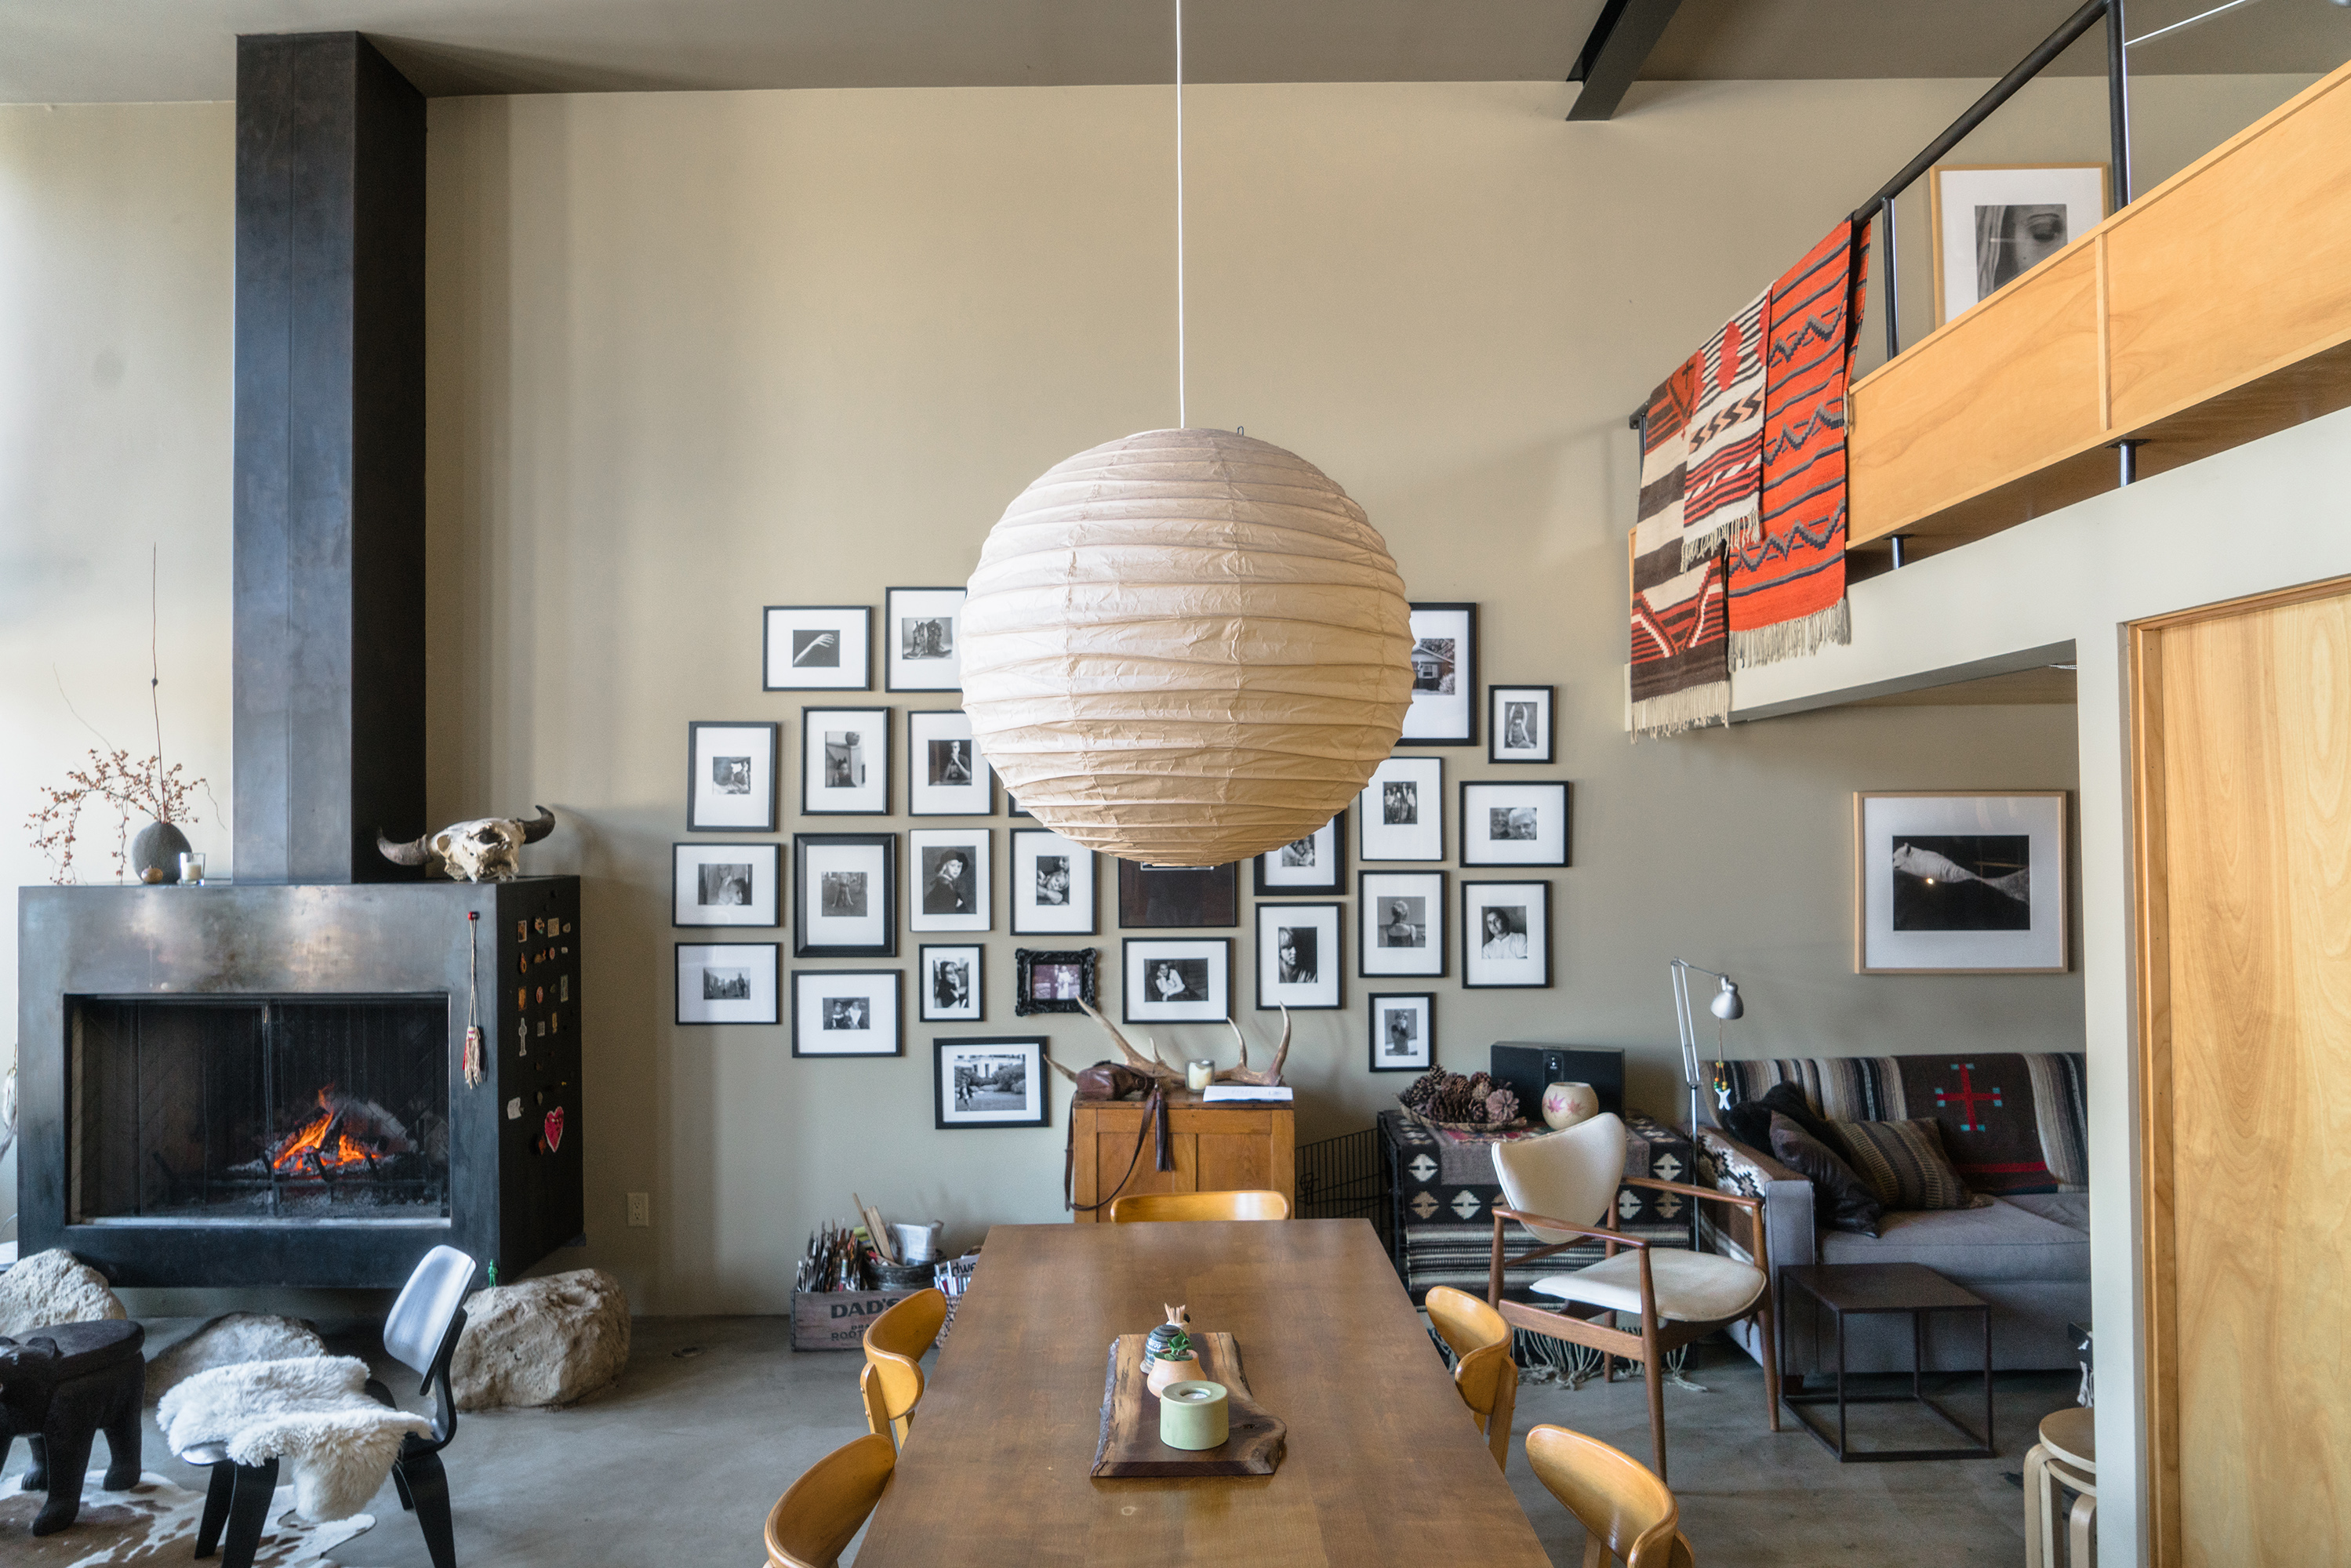 How To Become An Interior Designer In Indiana